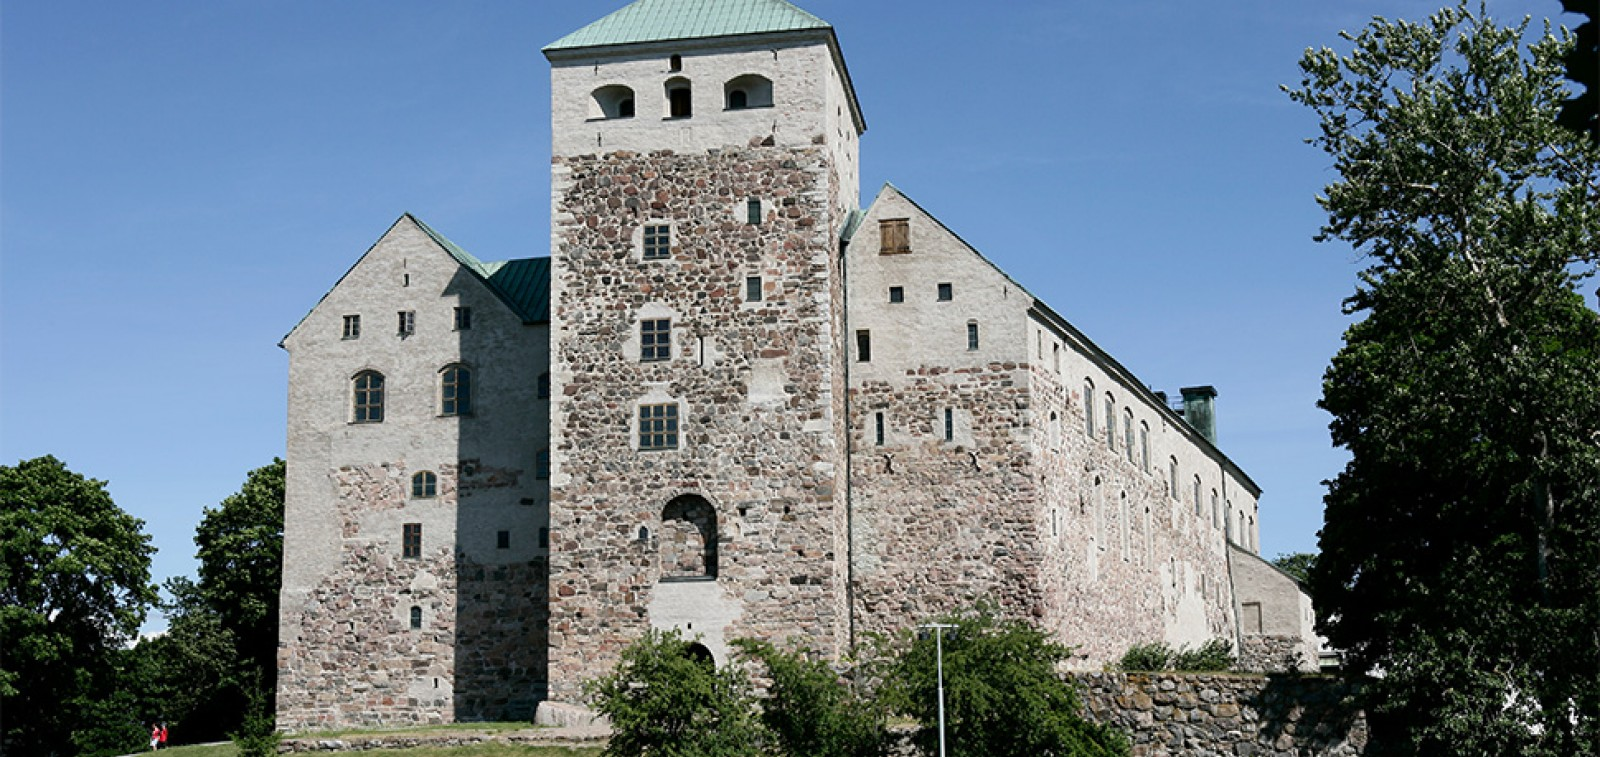 Turku Castle: The Masterpiece of the City